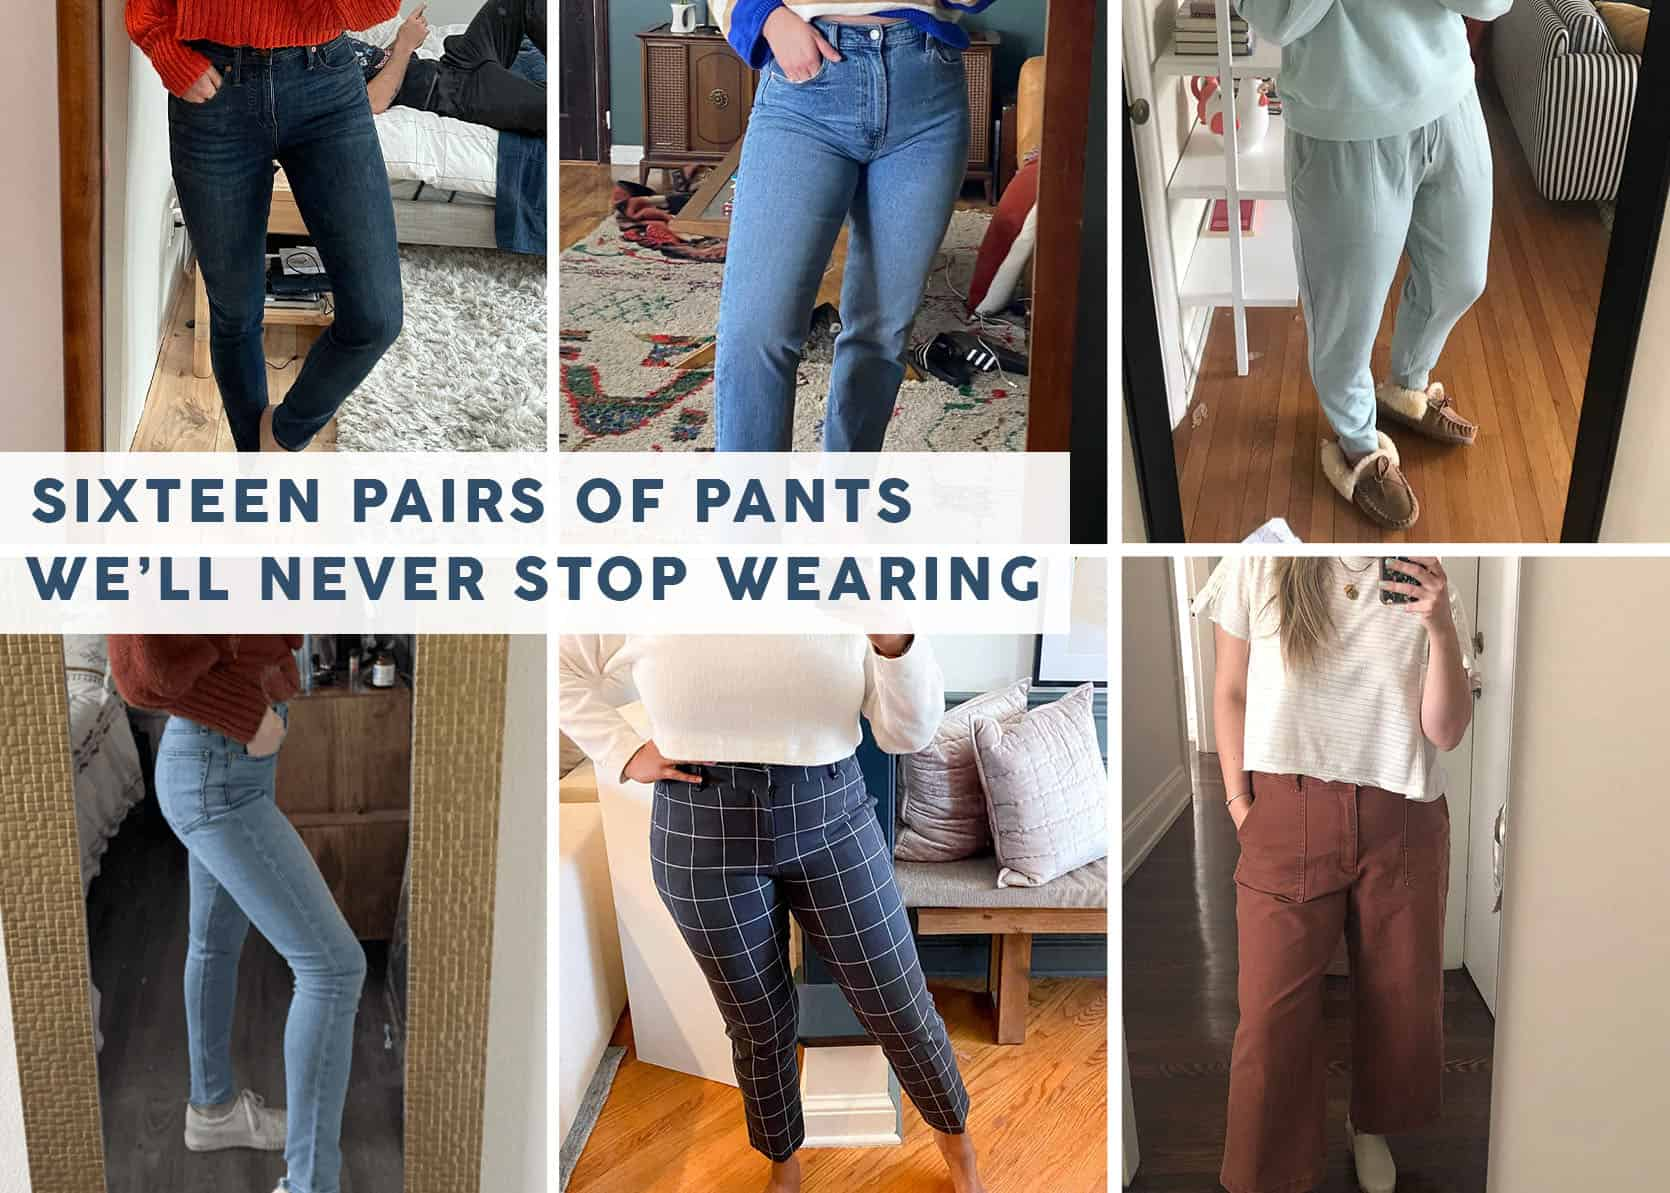 6 Regular Women Show Off The Pants They'd Buy Again In A Heartbeat